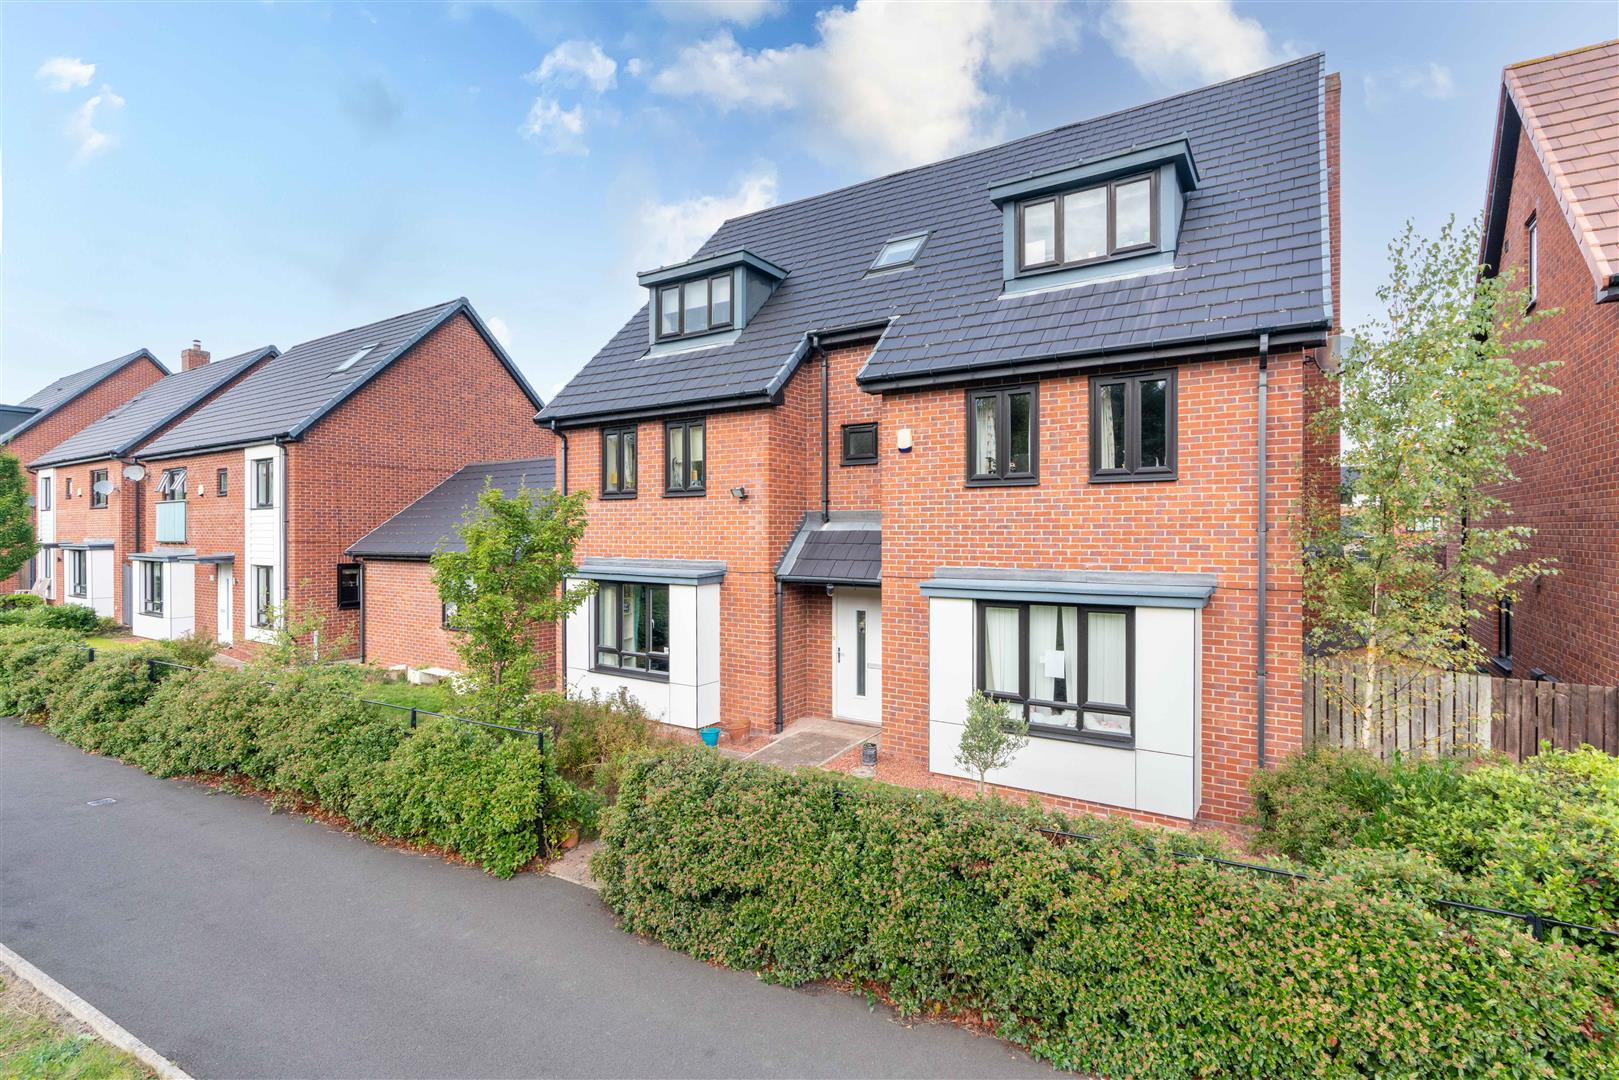 6 bed detached house for sale in Abberwick Walk, Newcastle Upon Tyne  - Property Image 1